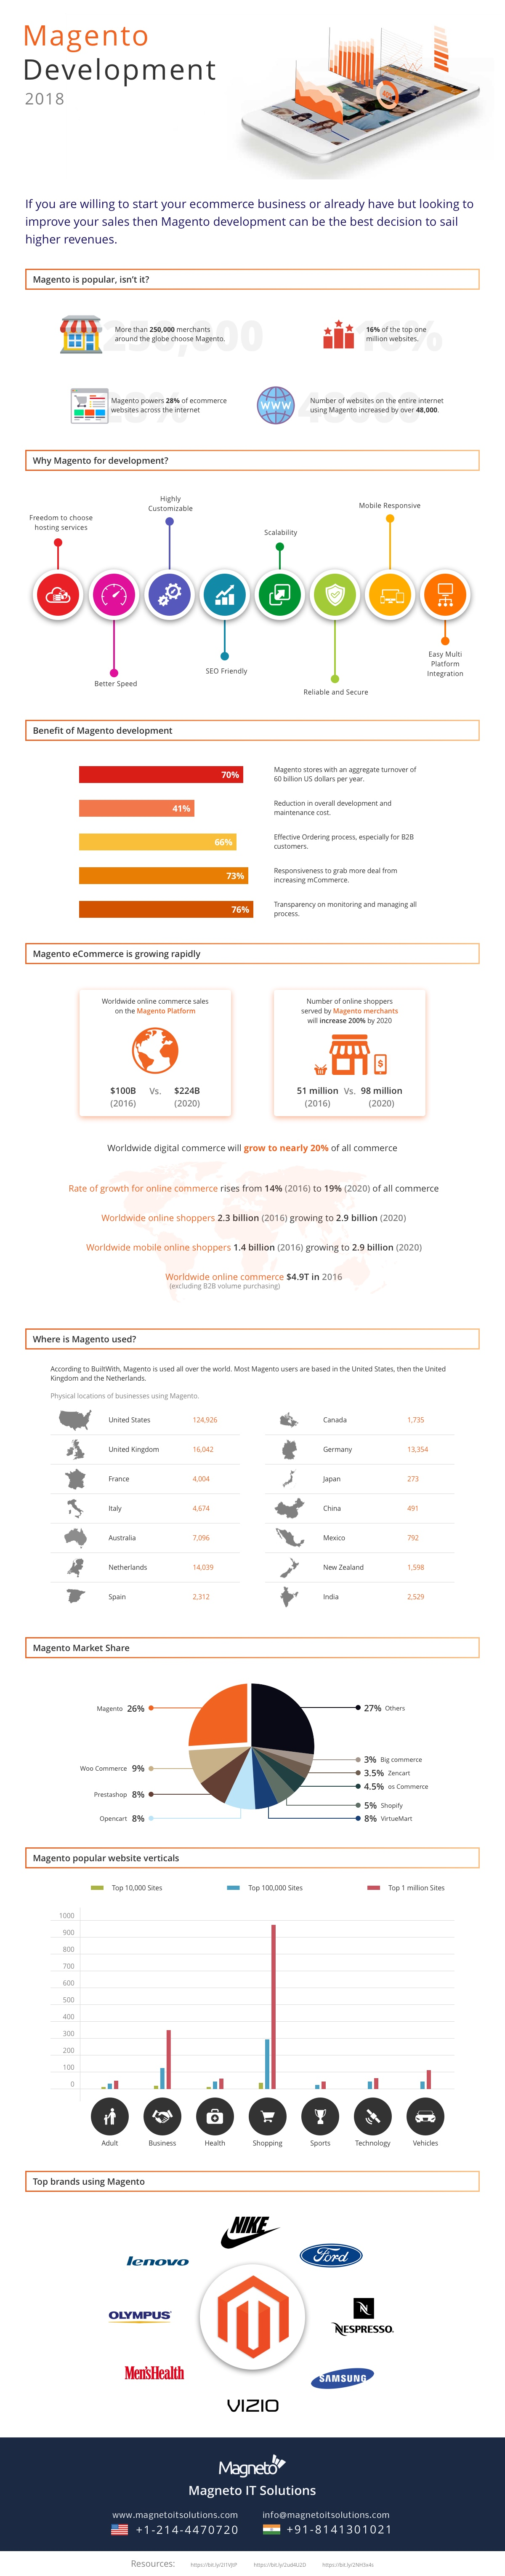 Magento Development Infographic